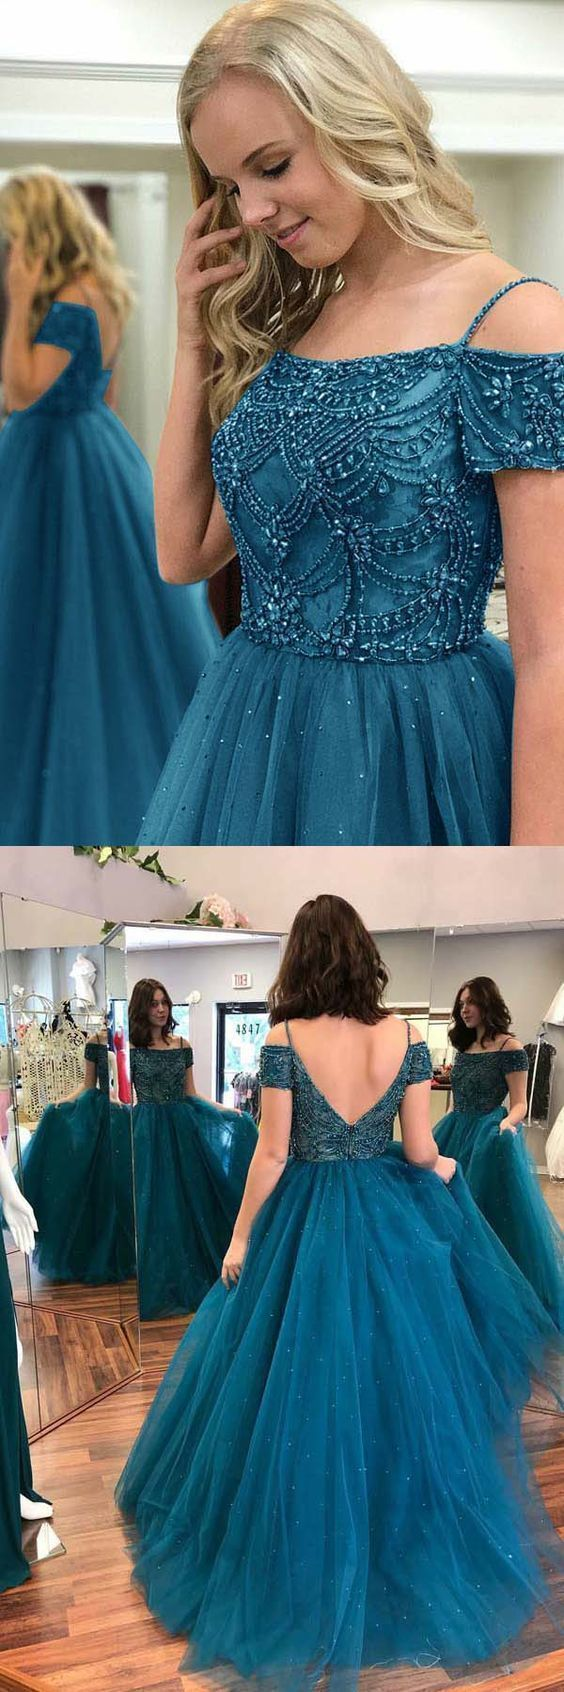 Ball Gown Off-the-Shoulder Dark Blue Tulle by formalgowns on Zibbet